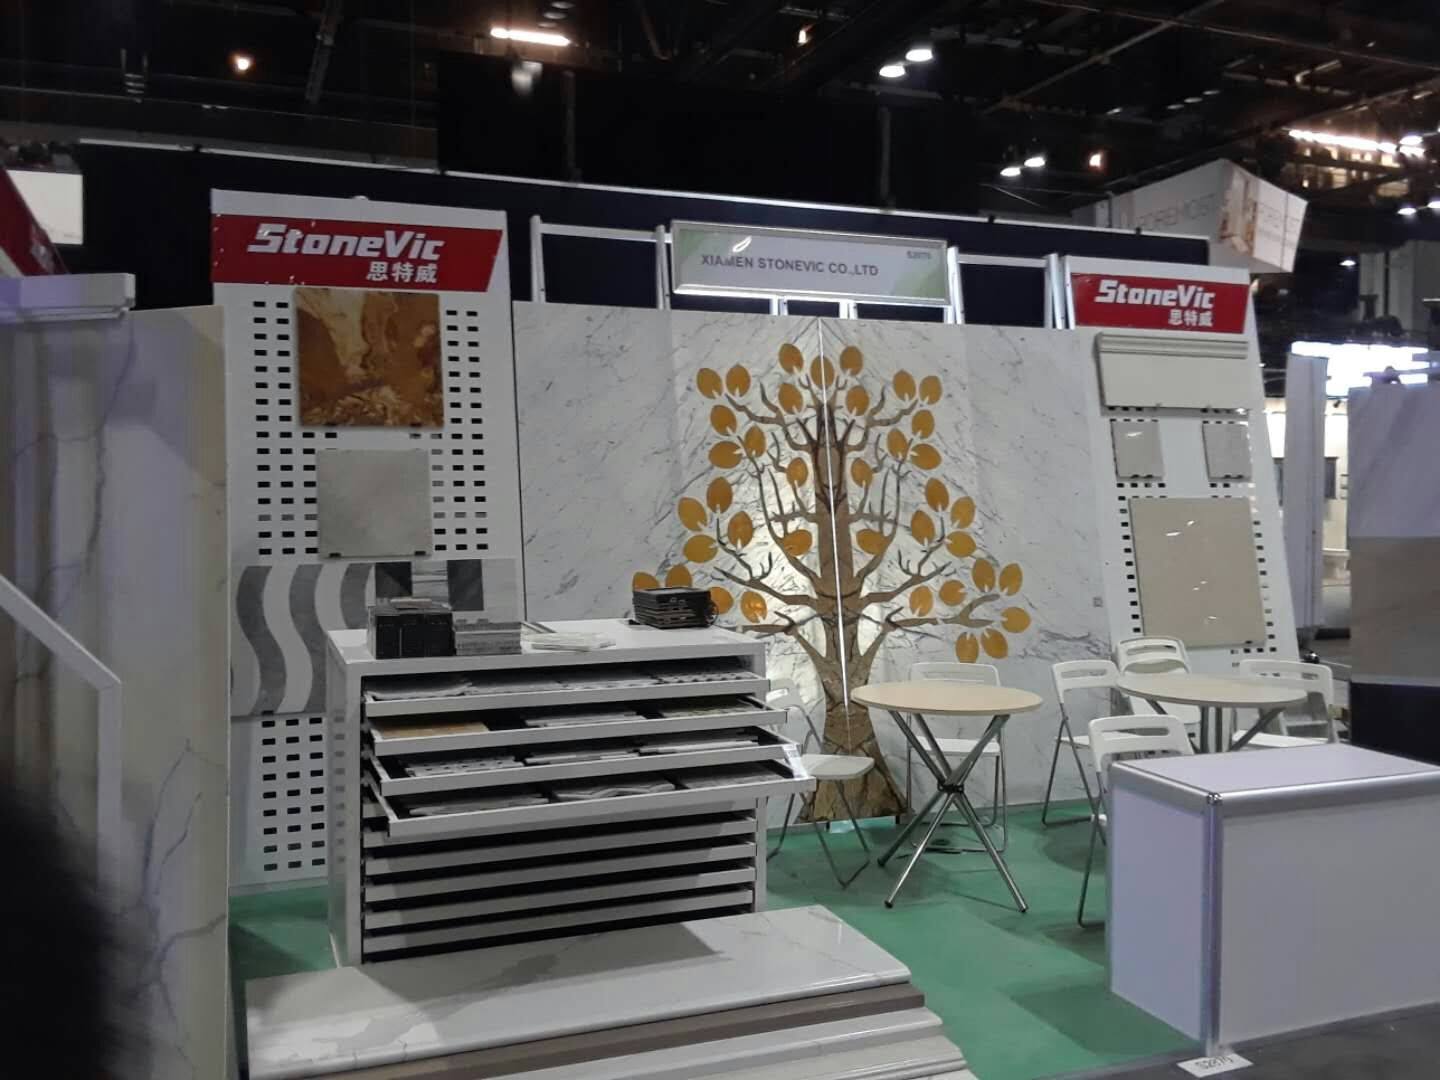 StoneVic is attending IBS show from 9-11th, Jan.,  in Orlando, USA.